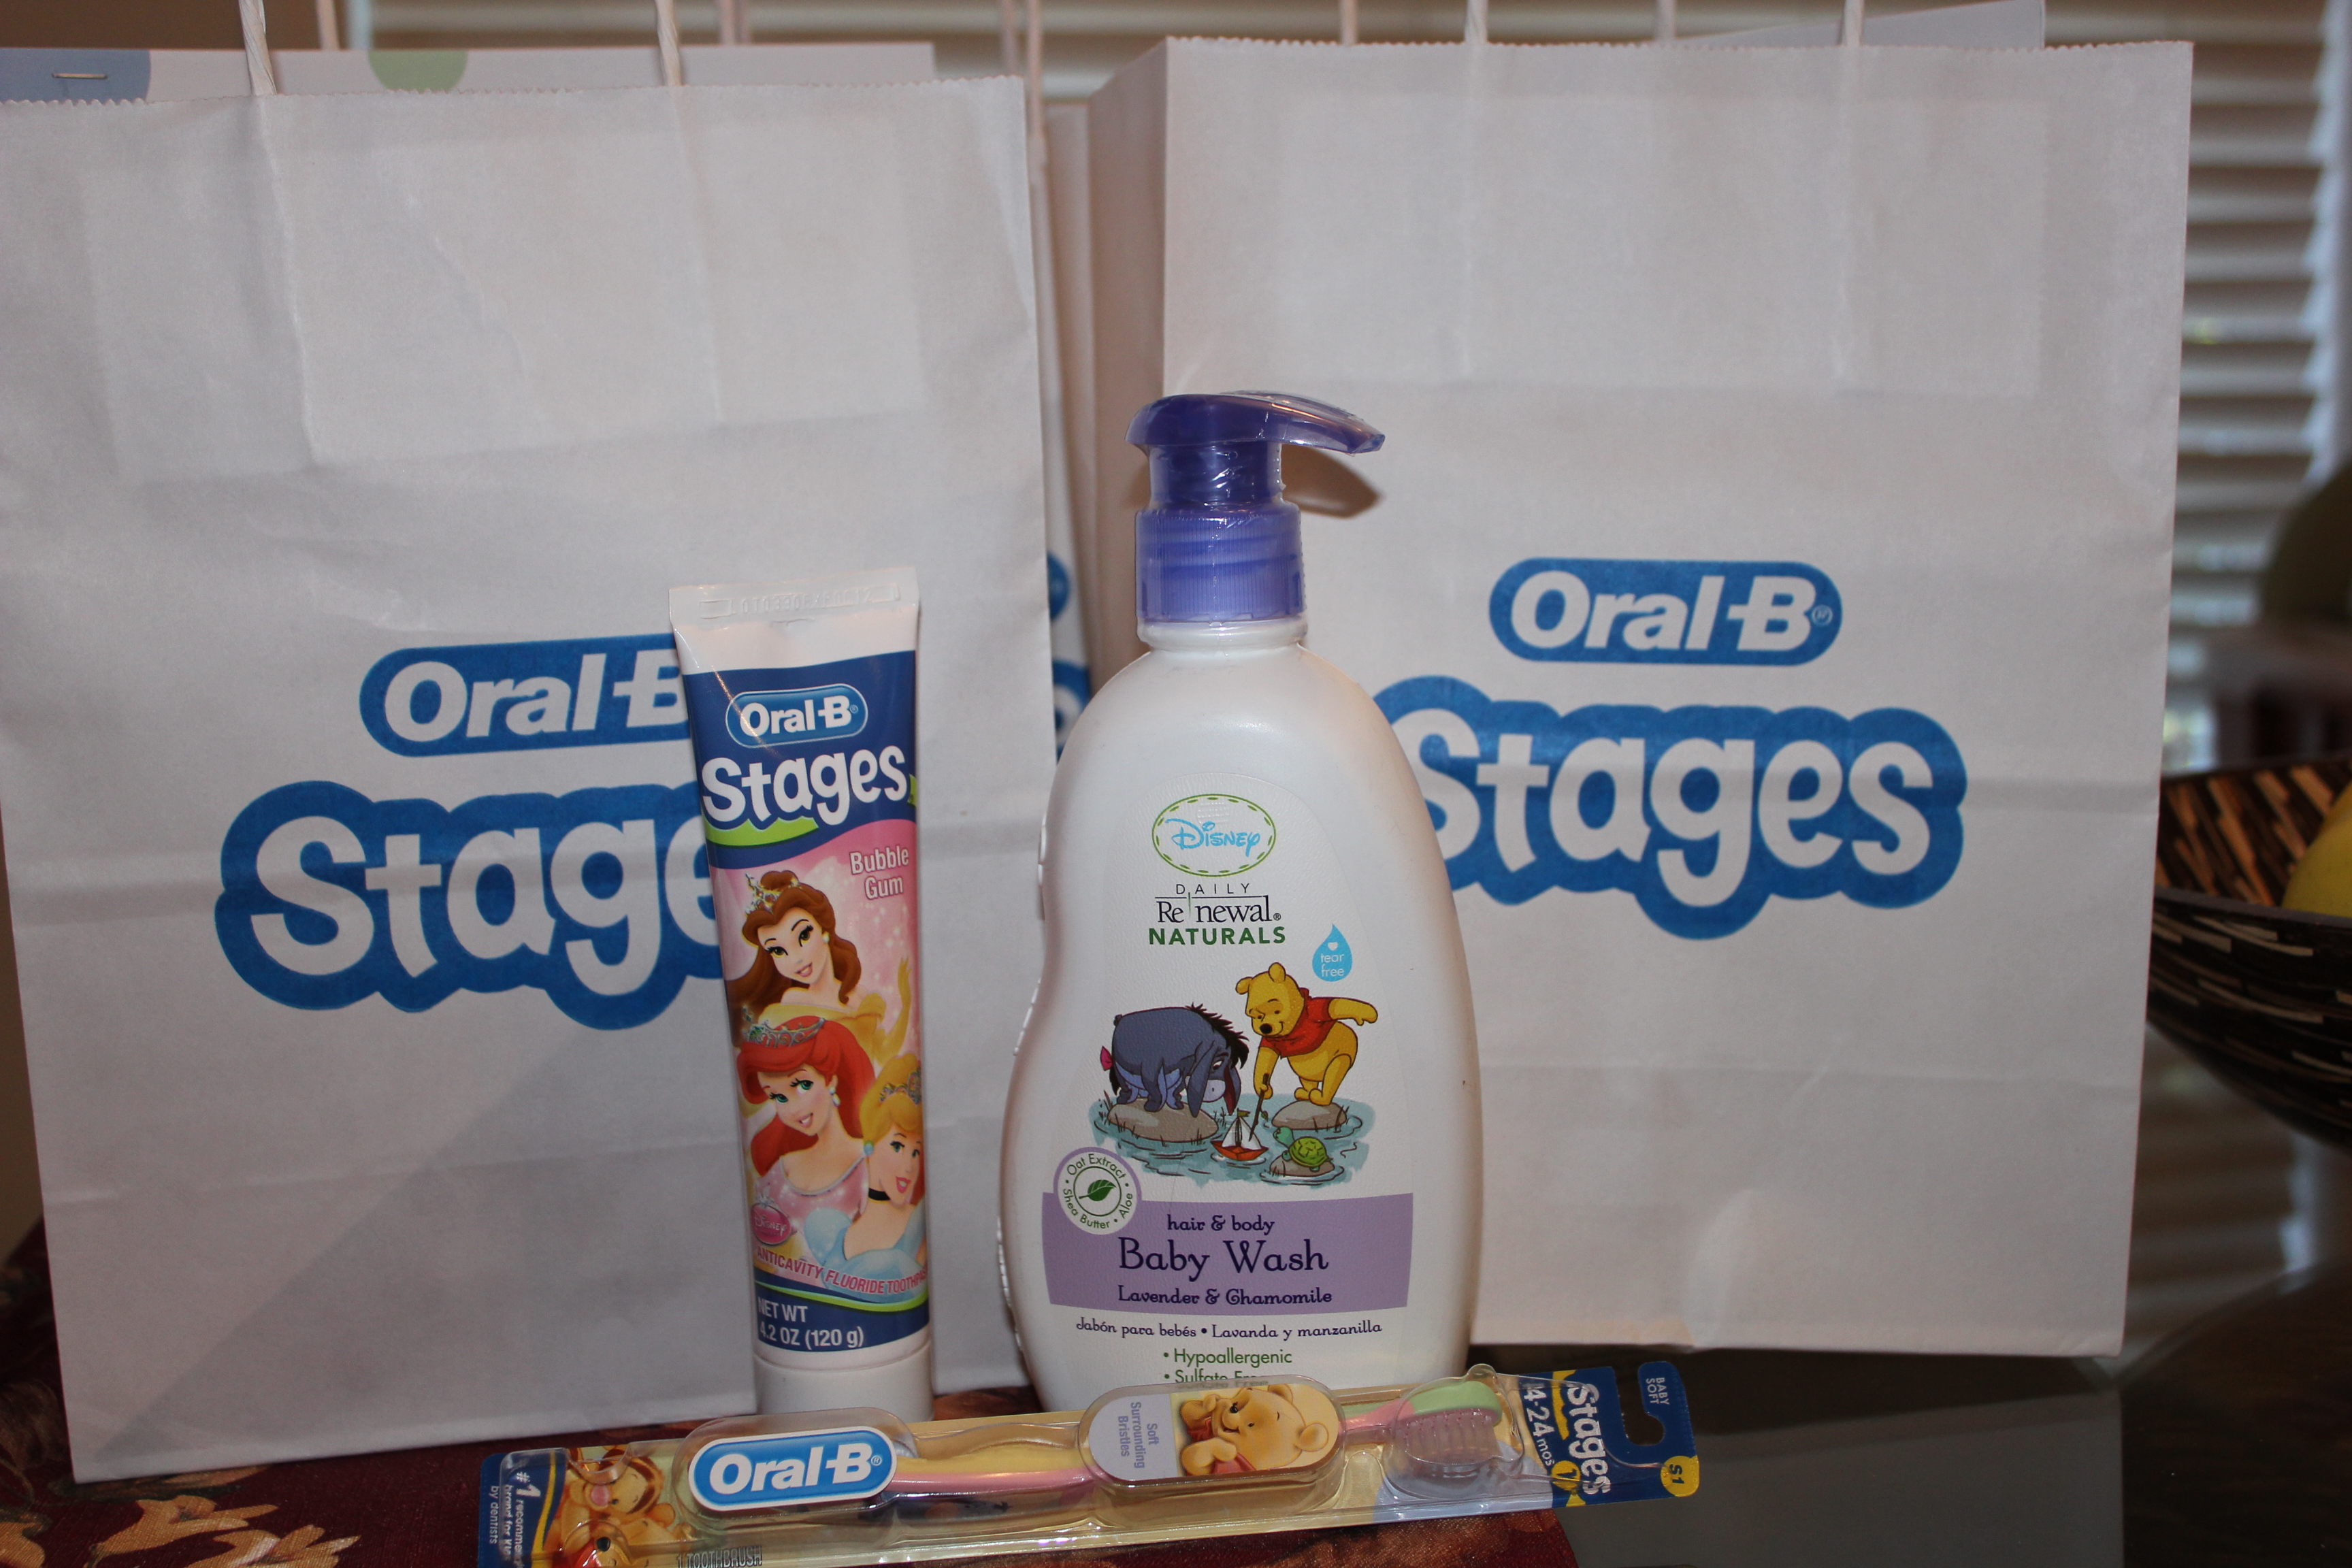 Oral-B Gift Bags